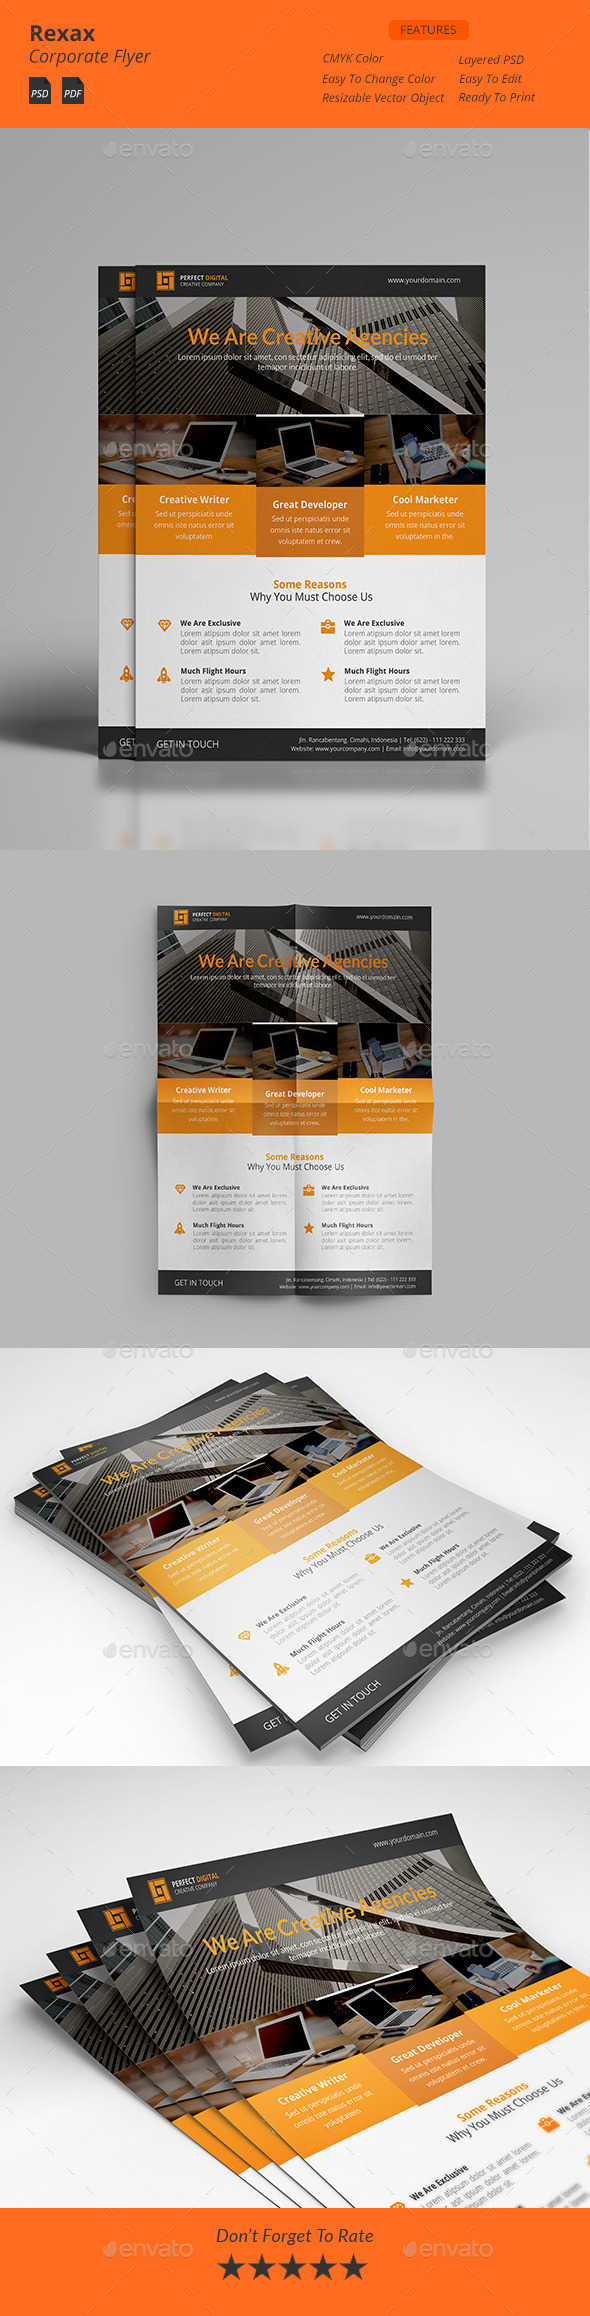 Rexax - Clean Corporate Flyers - Corporate Flyers